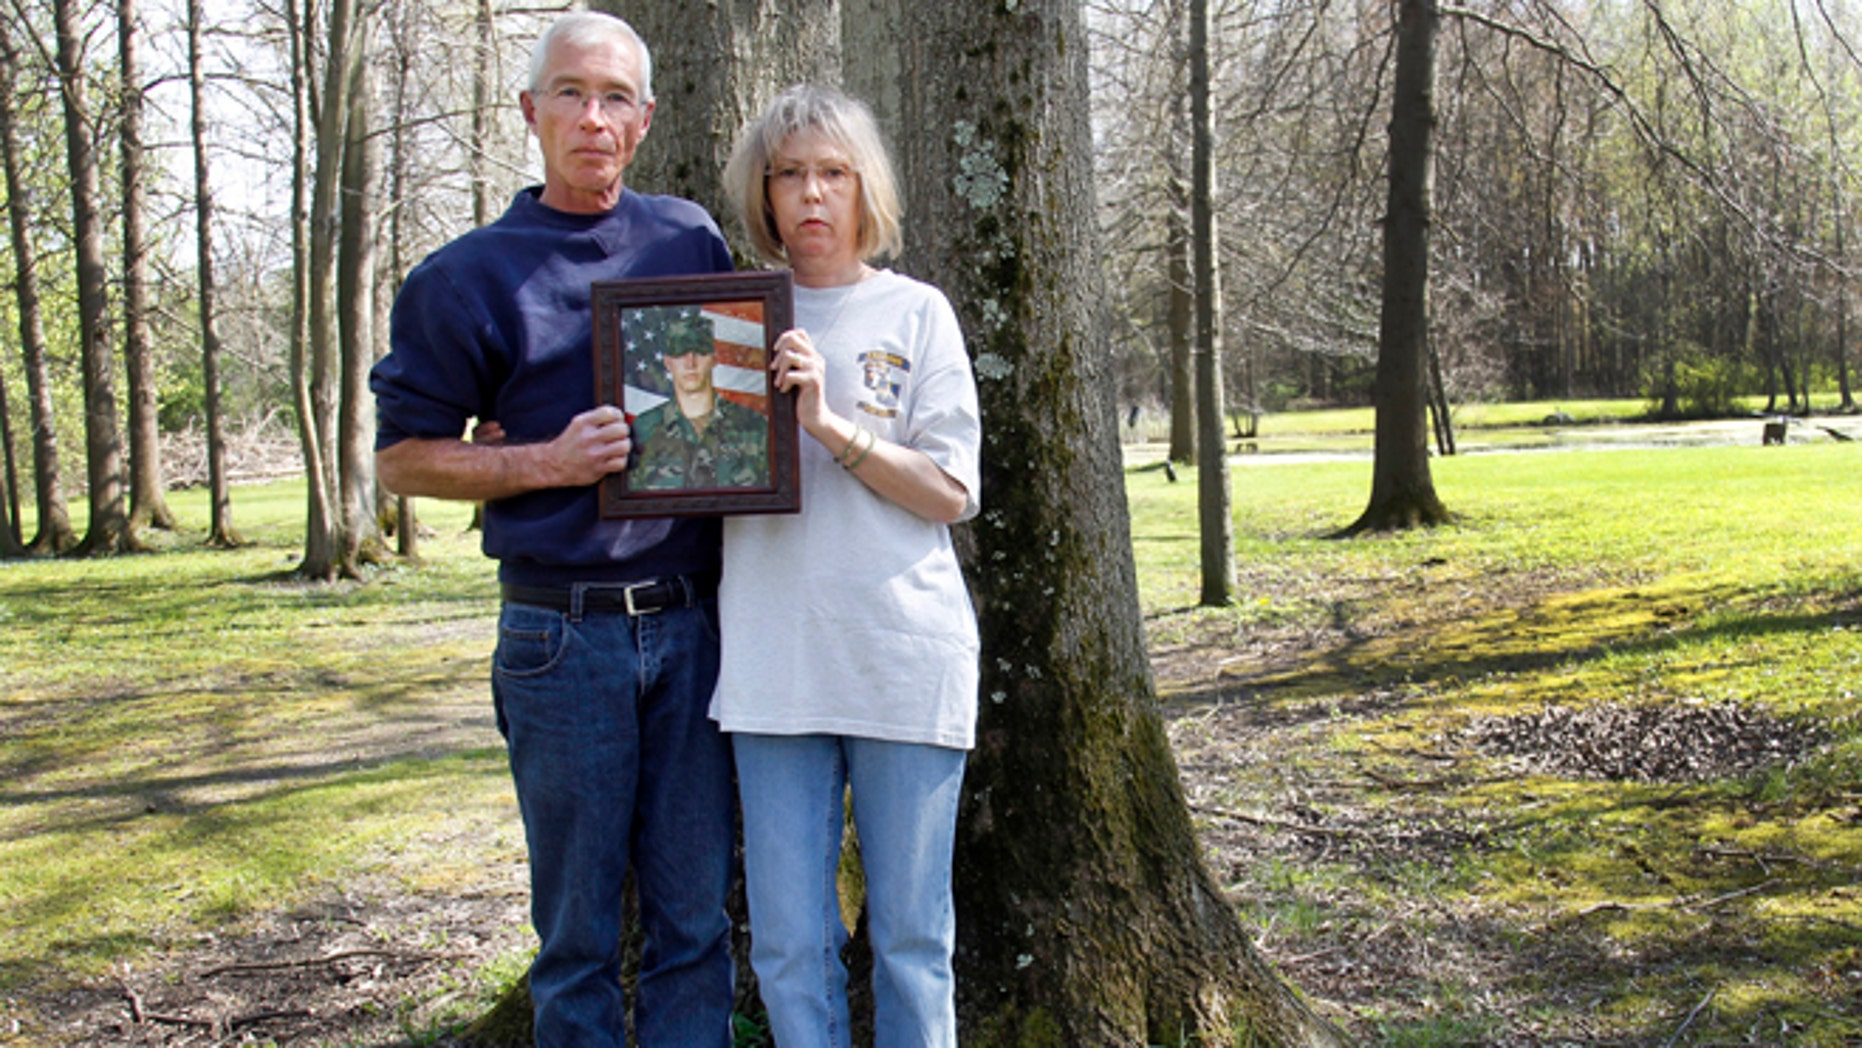 April 19, 2010: Matt and Cheryl Ecker hold a photo of their son, Army veteran Michael Ecker, in Champion, Ohio. On a warm summer afternoon in Champion, Michael Ecker, 25, an Iraq war veteran, called out to his father from a leafy spot in their backyard. Then, as the two stood just steps apart, Michael saluted, raised a gun to his head and pulled the trigger.